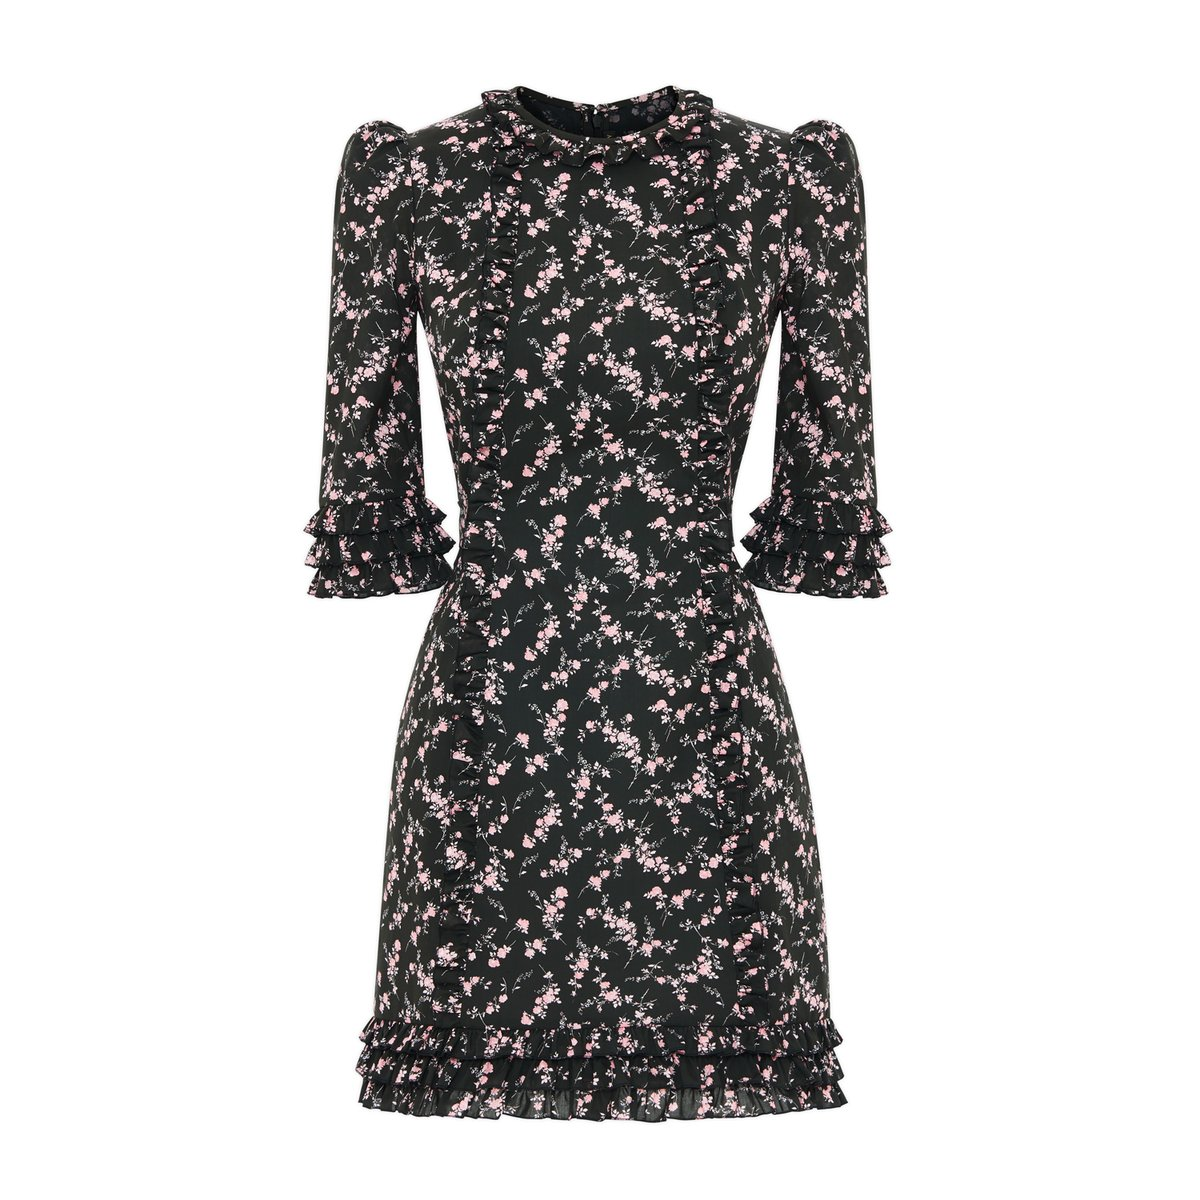 wr-a-DR124-the_mini_cate_dress-black_pink_elizabeth_cotton-1_1200x1200